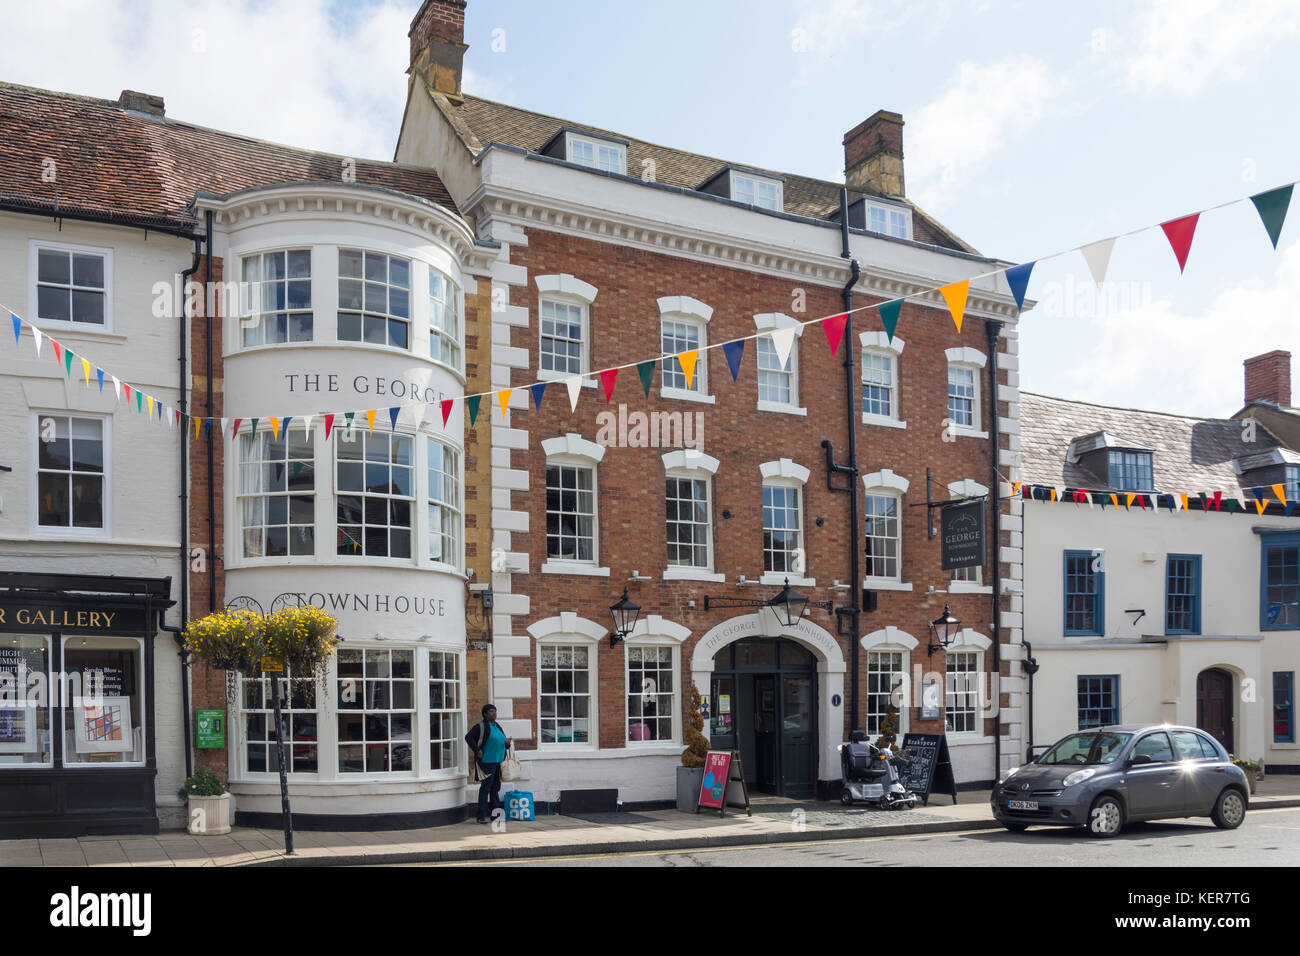 18th century The George Townhouse Inn, High Street, Shipston-on-Stour, Warwickshire, England, United Kingdom - Stock Image